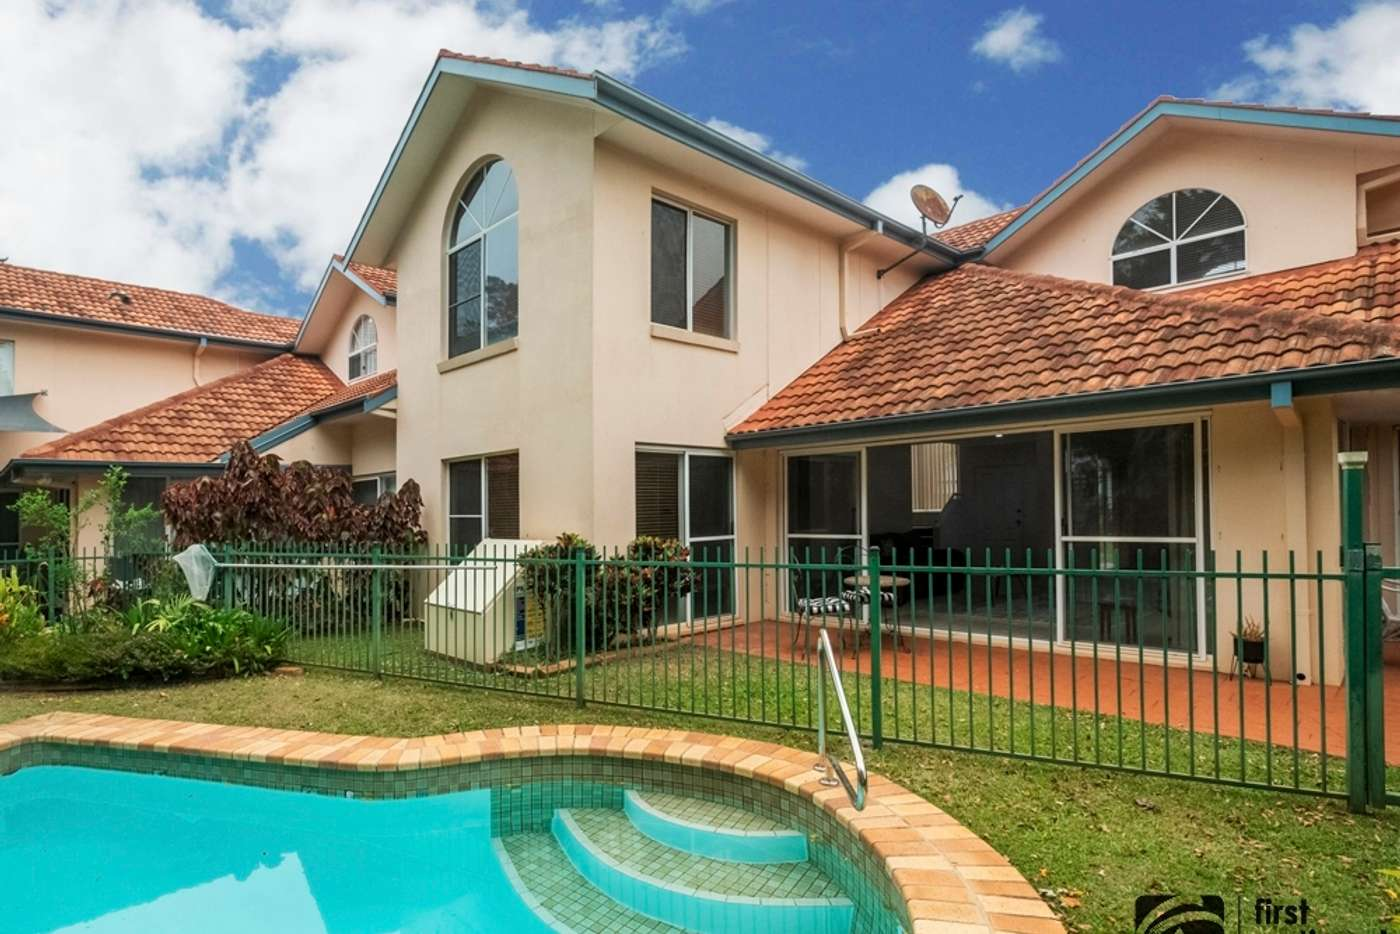 Main view of Homely house listing, 21 Shearwater Place, Korora NSW 2450